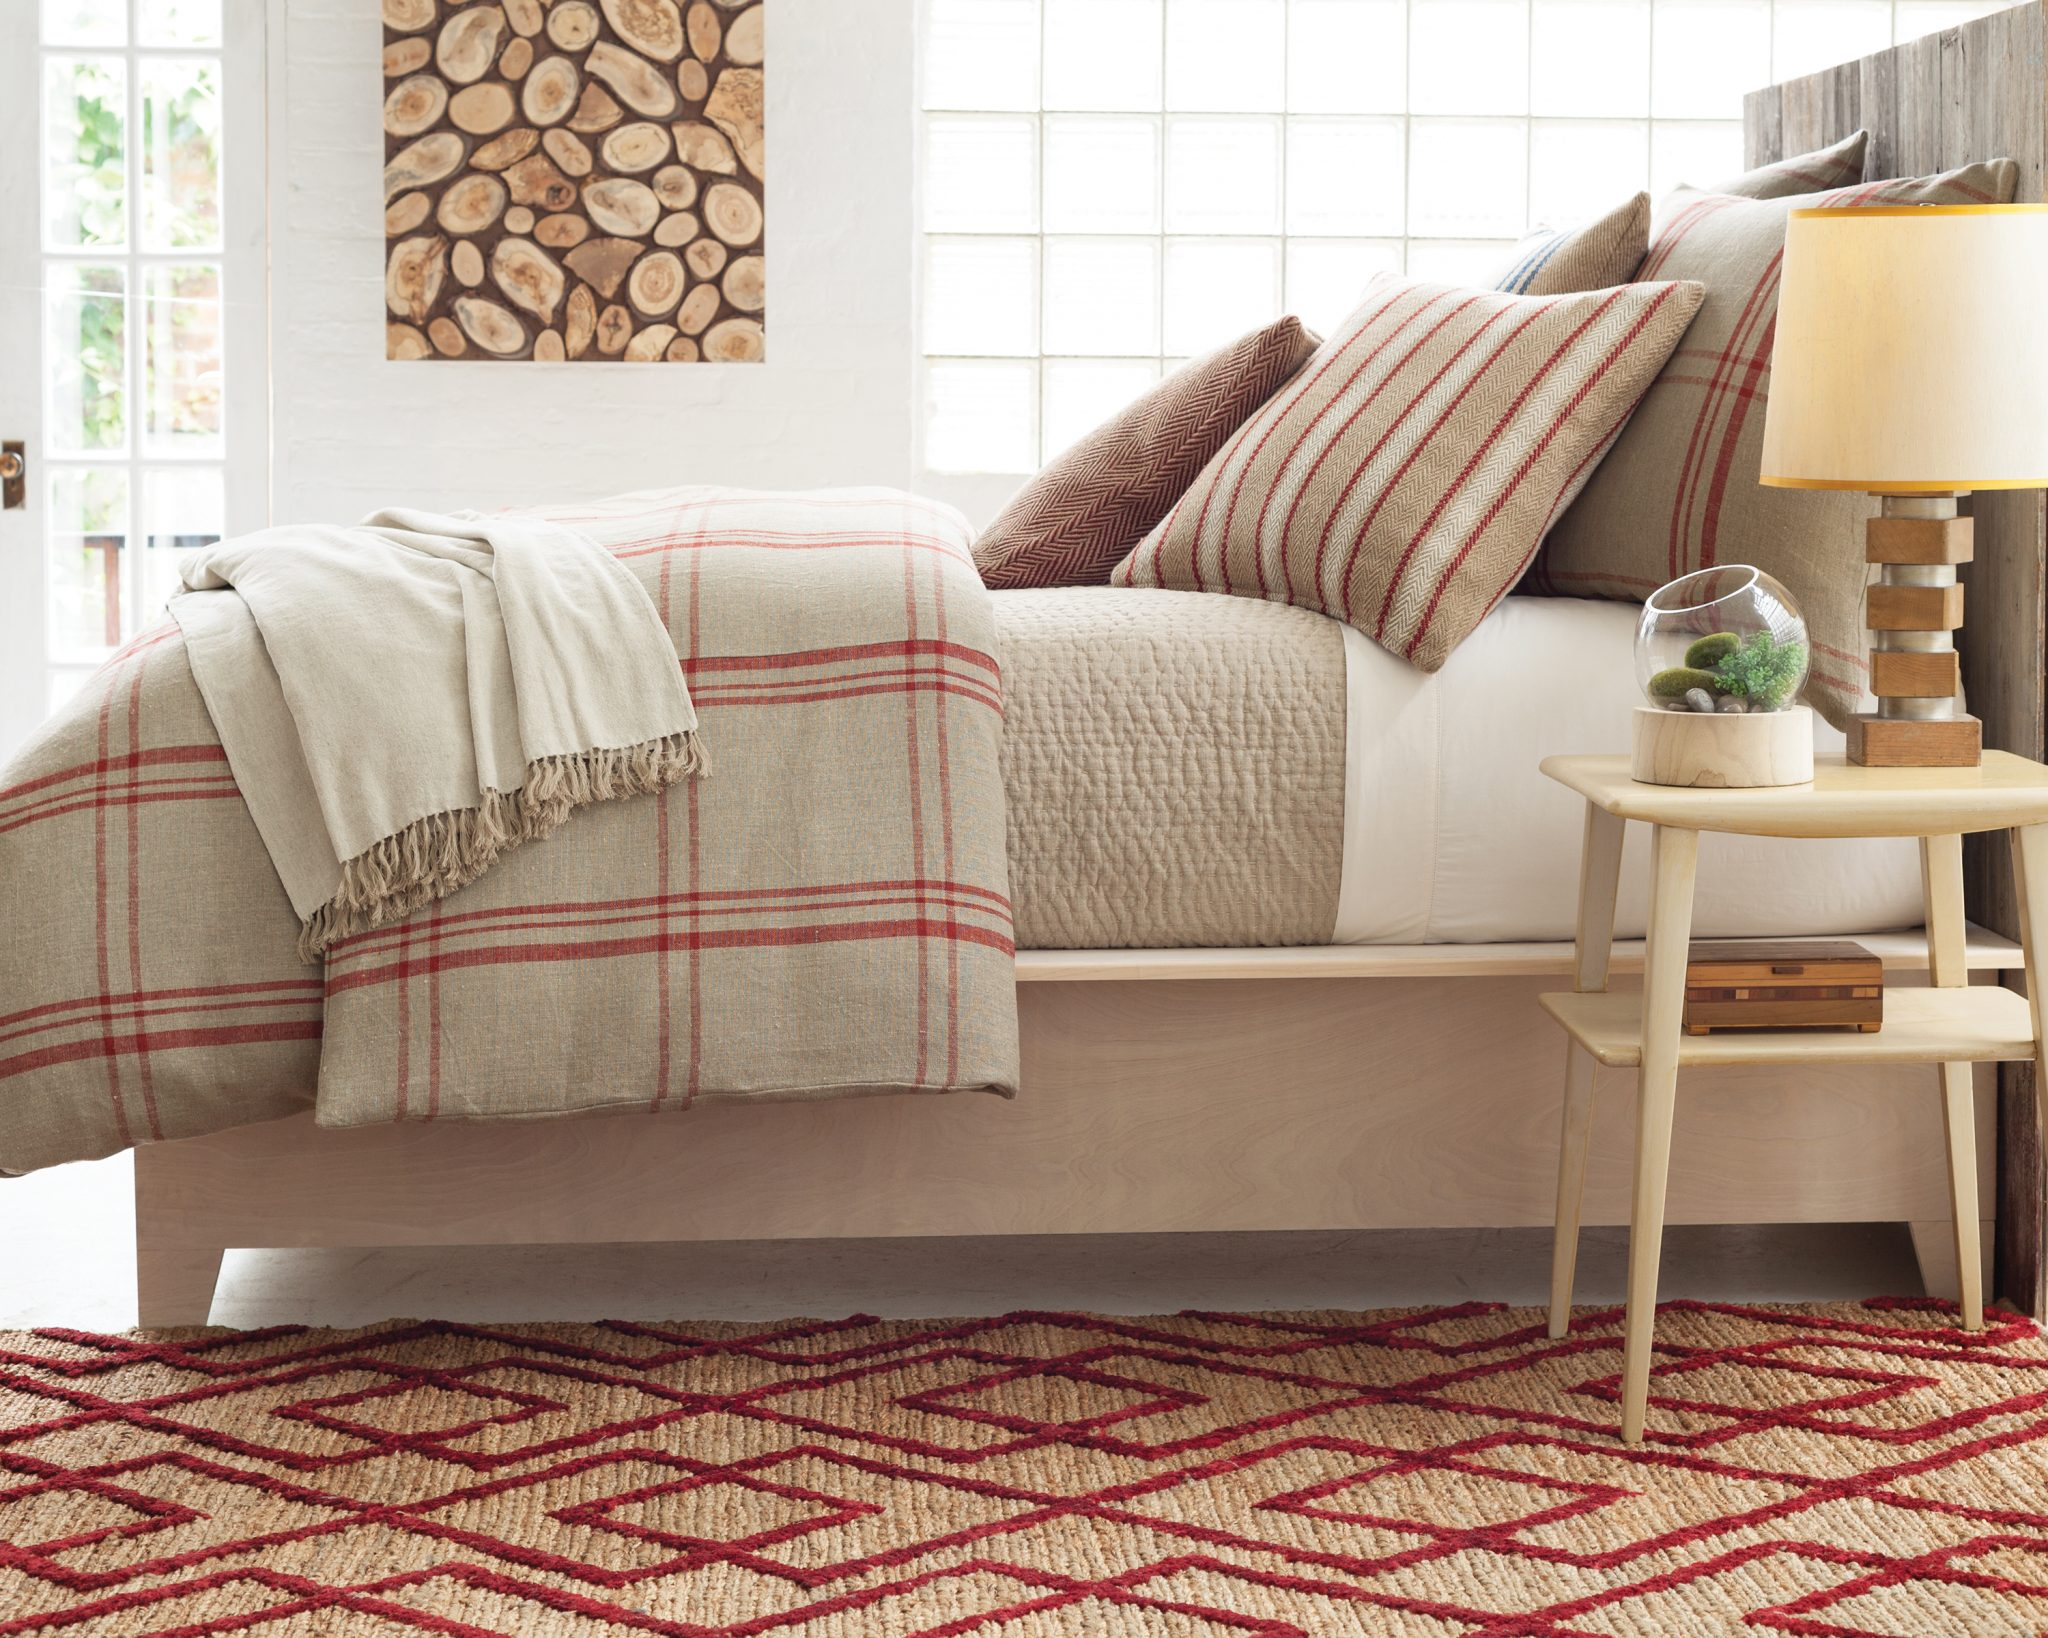 rustic bedroom with woven rugs